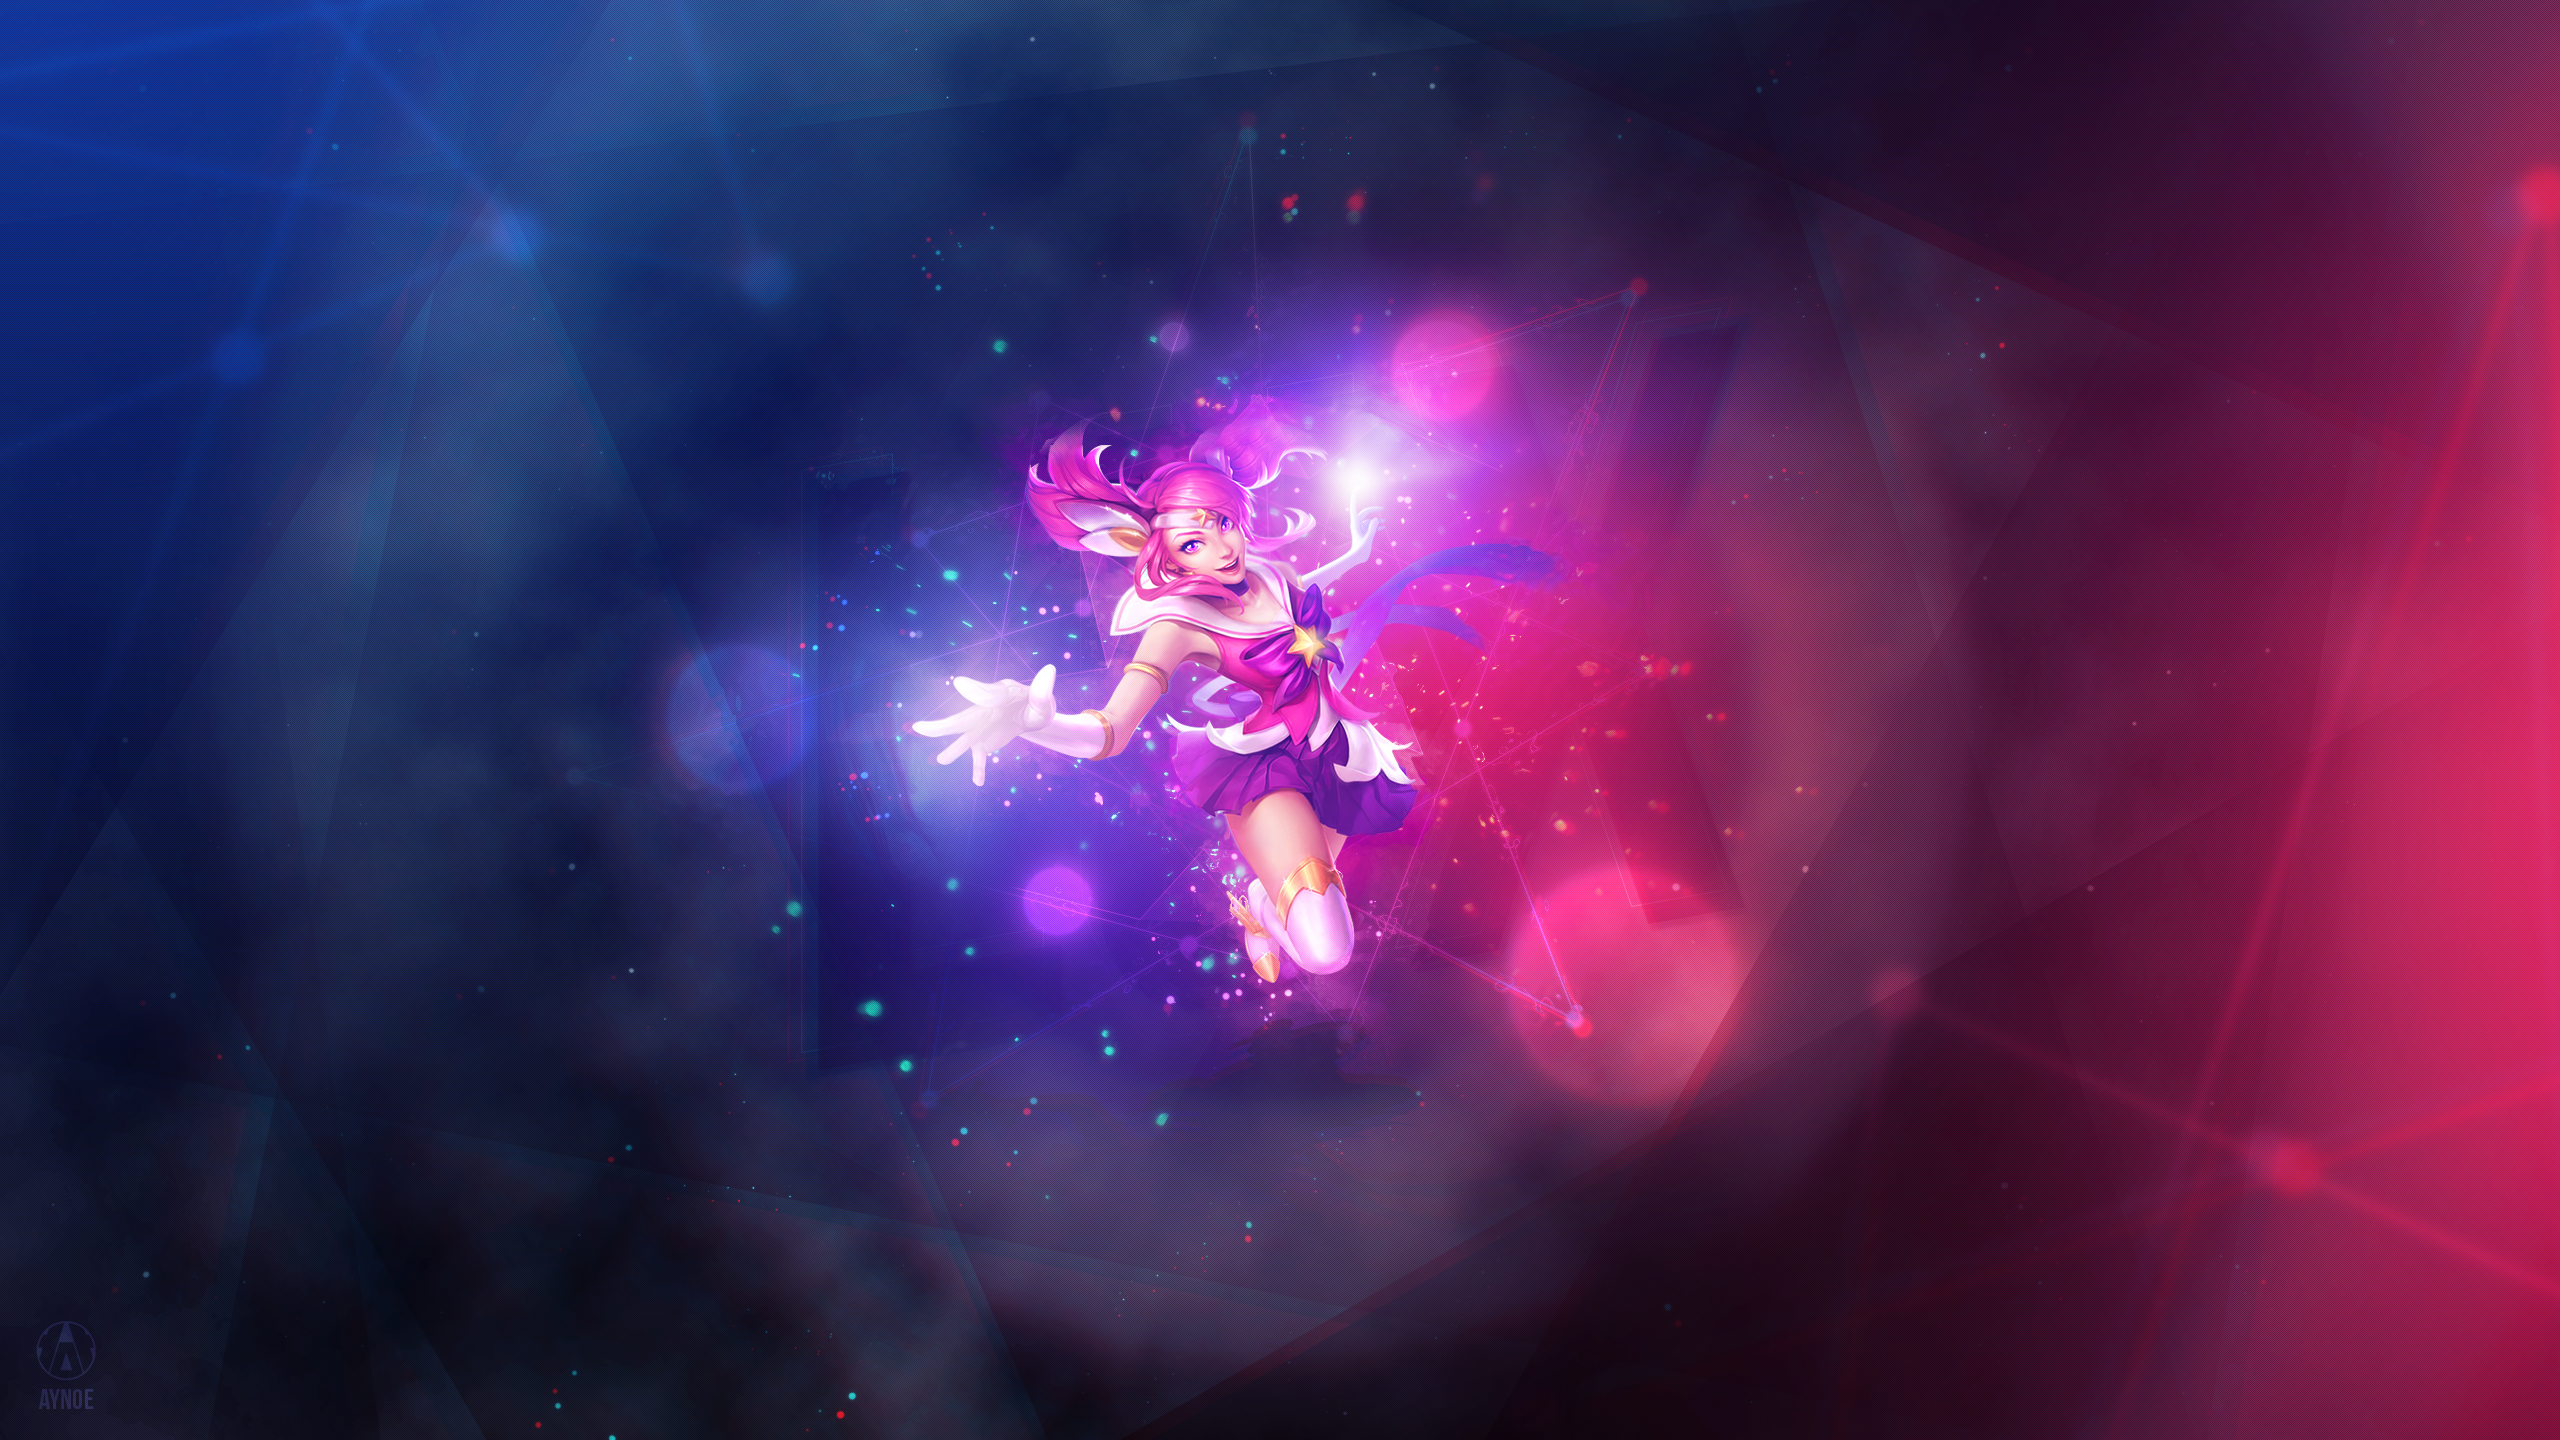 Sg Lux League Of Legends Wallpaper By Aynoe On Deviantart